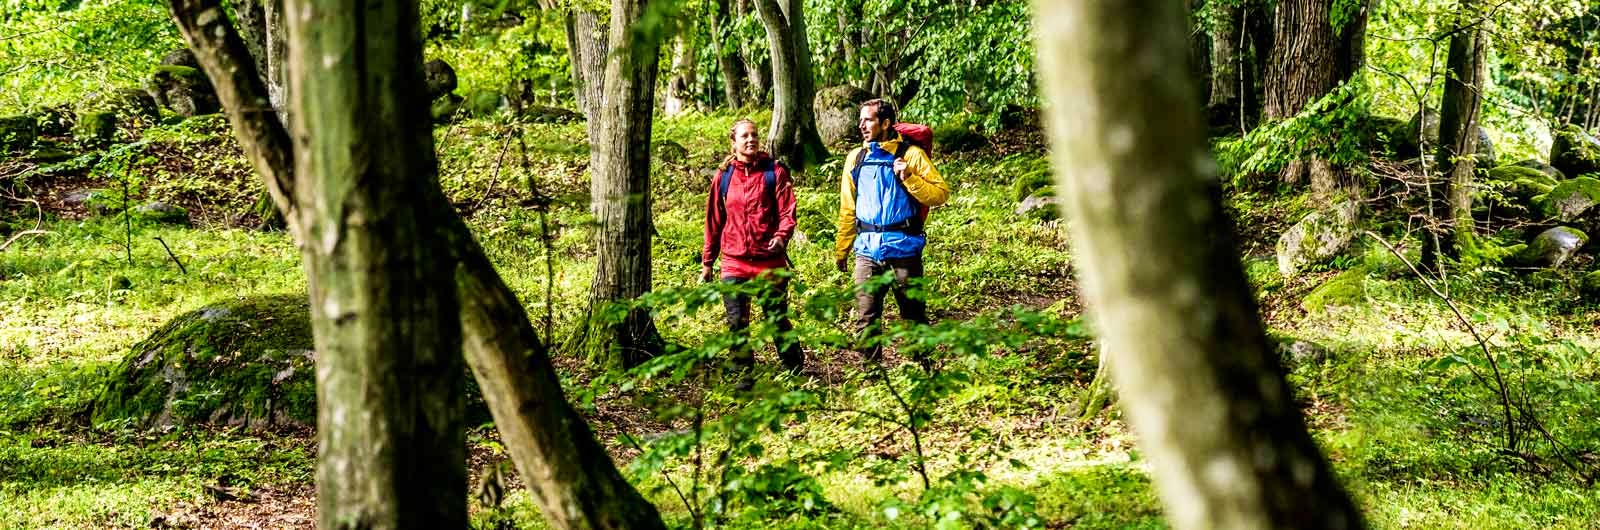 Colourfully dressed hikers in the woods